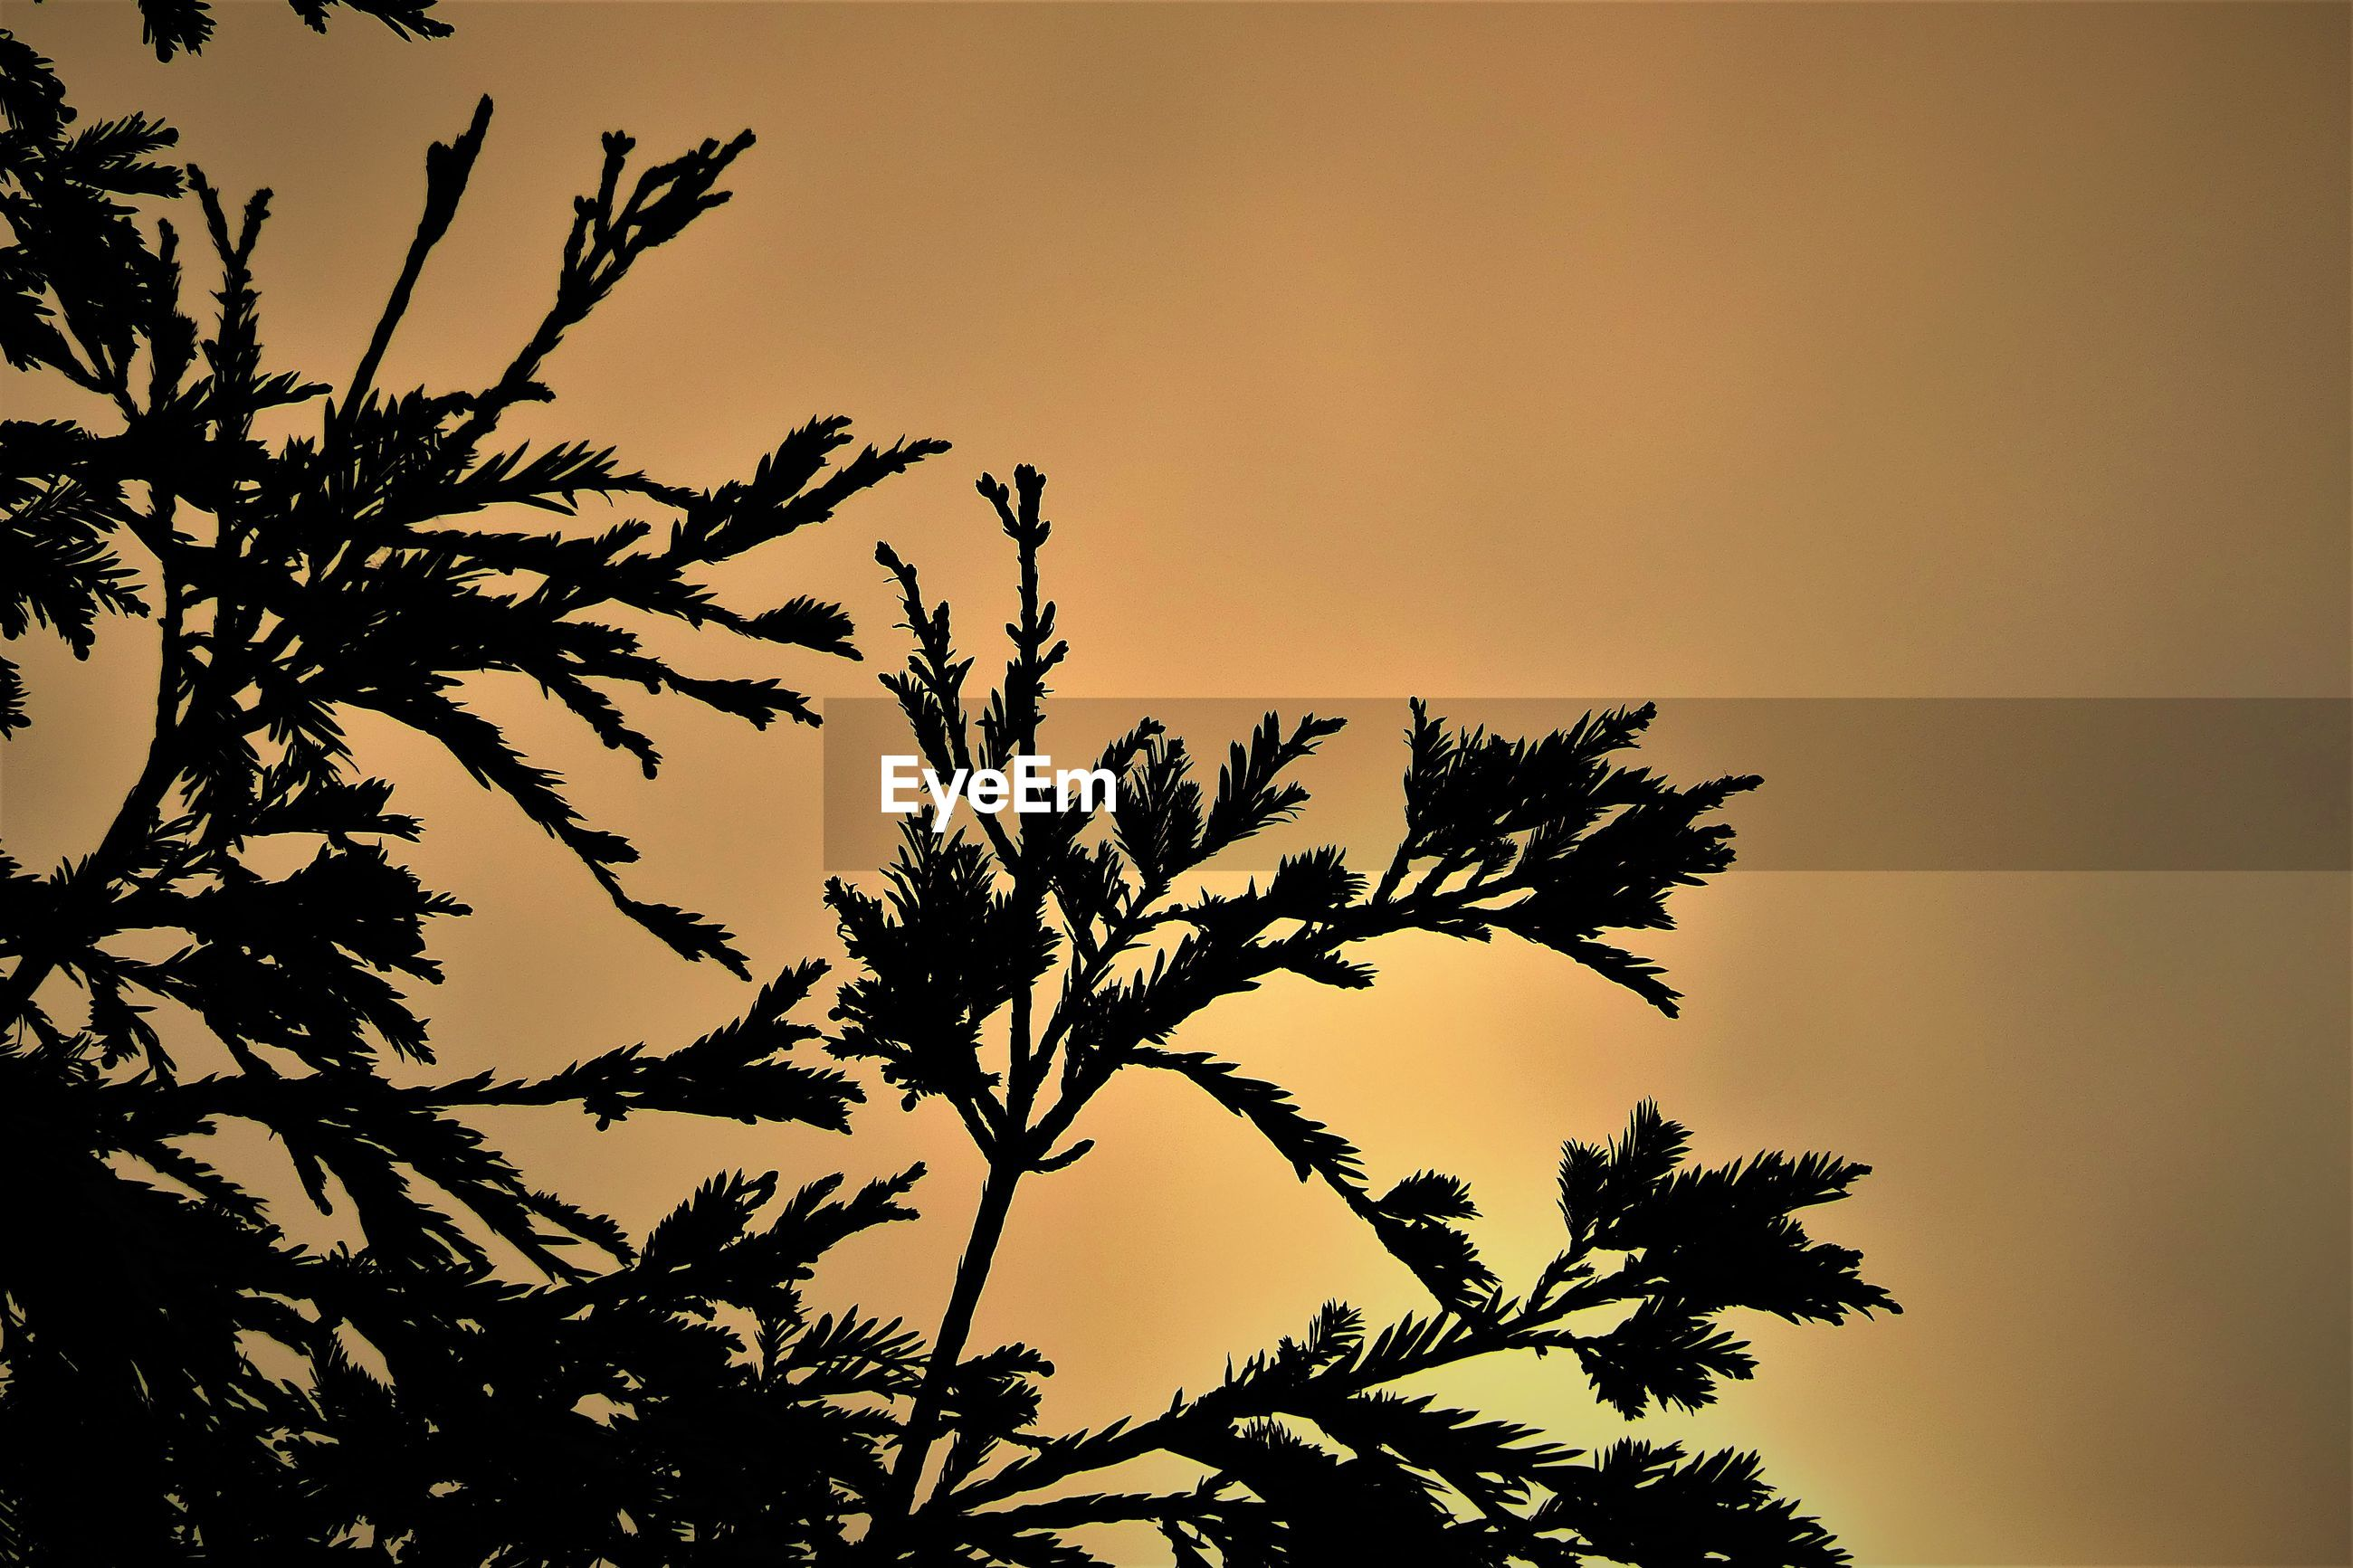 LOW ANGLE VIEW OF SILHOUETTE TREE AGAINST ORANGE SKY